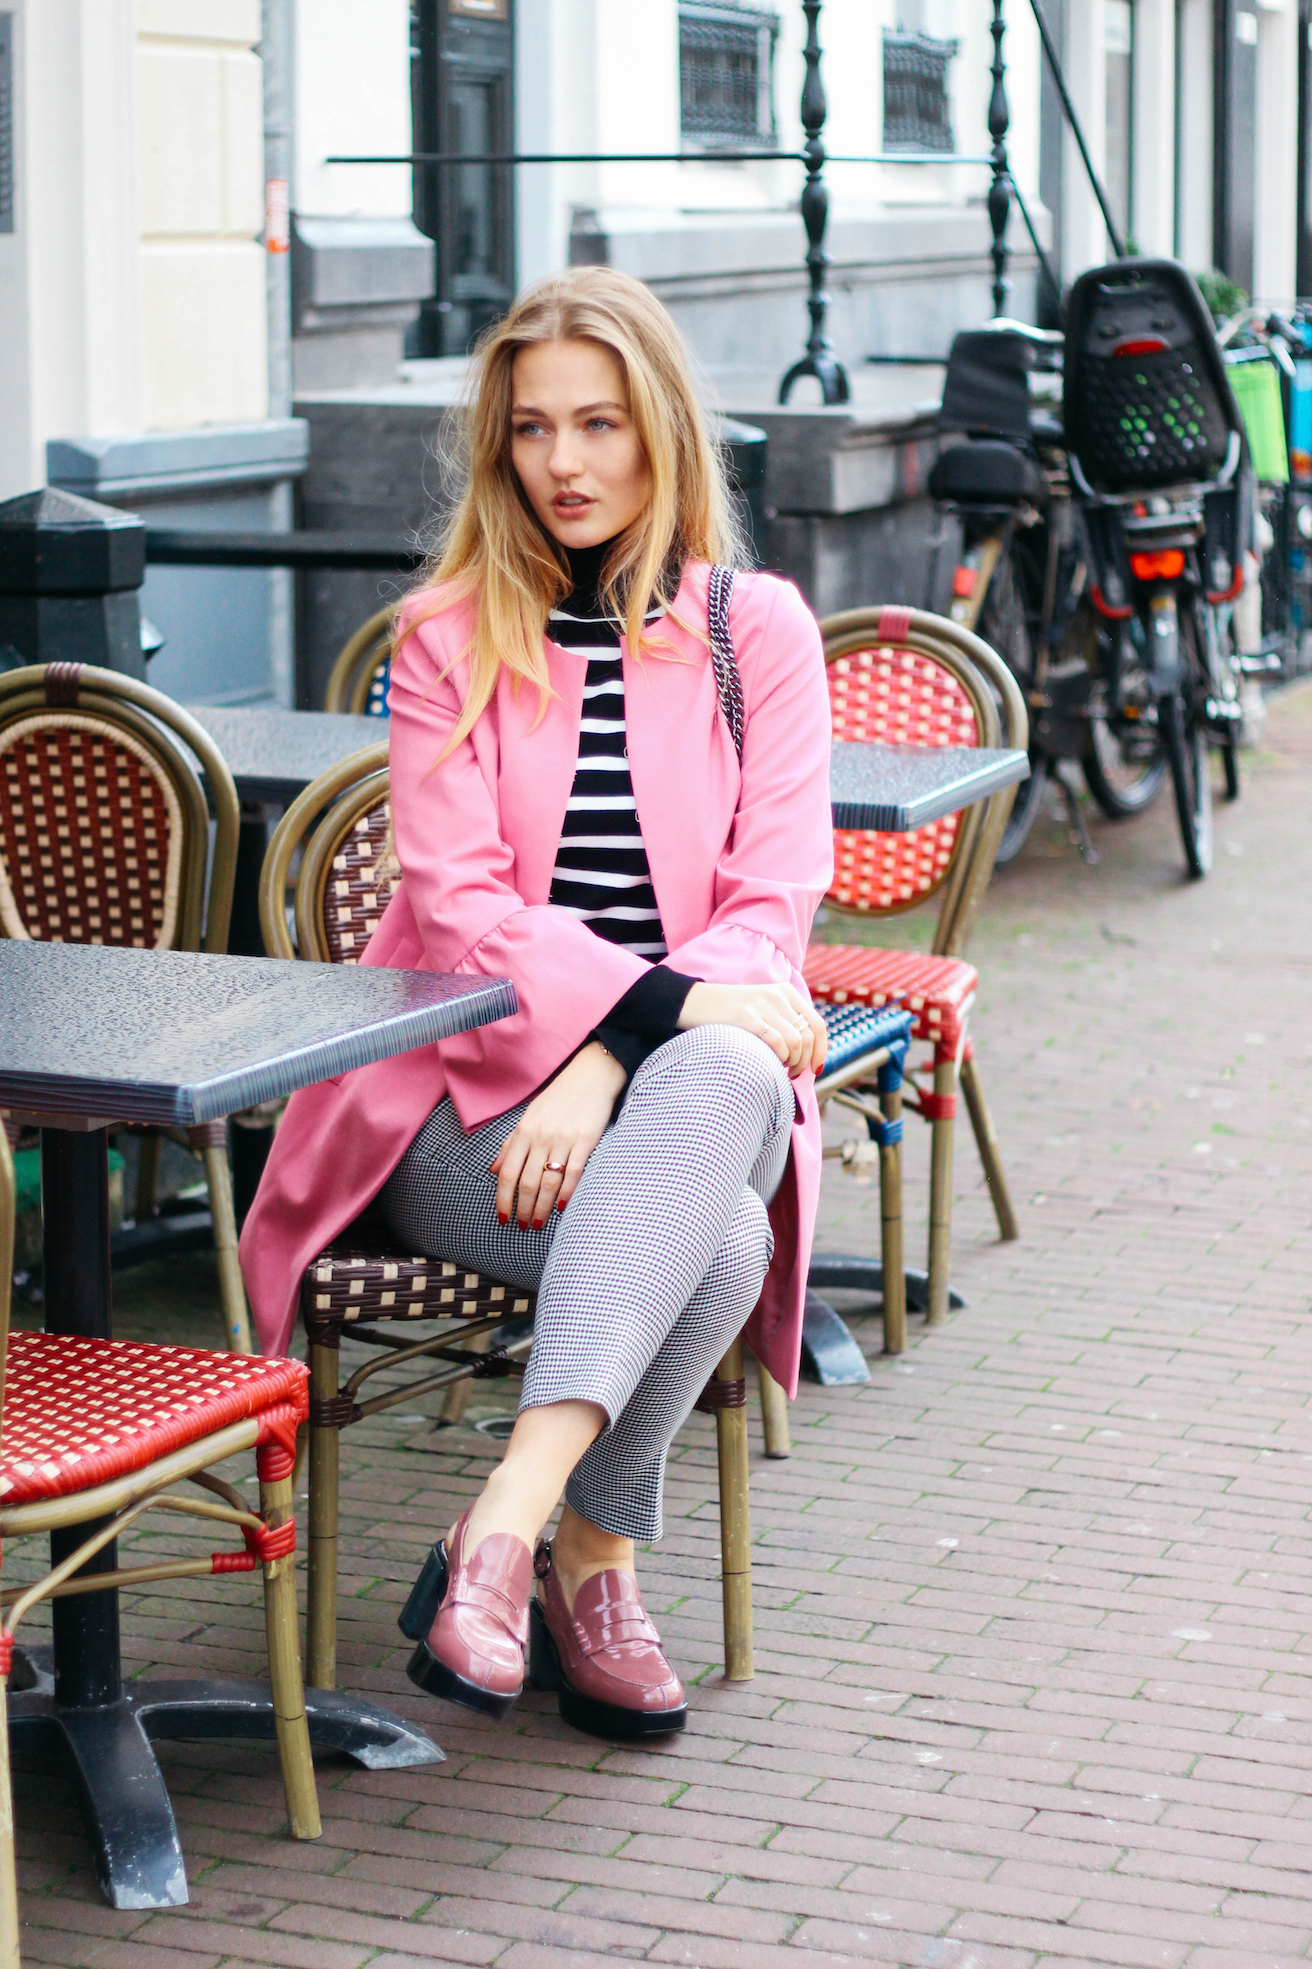 floortjeloves, comma, agl, elisestore, Elise store, checkered, stripes, checkered and stripes, combining prints, pink coat